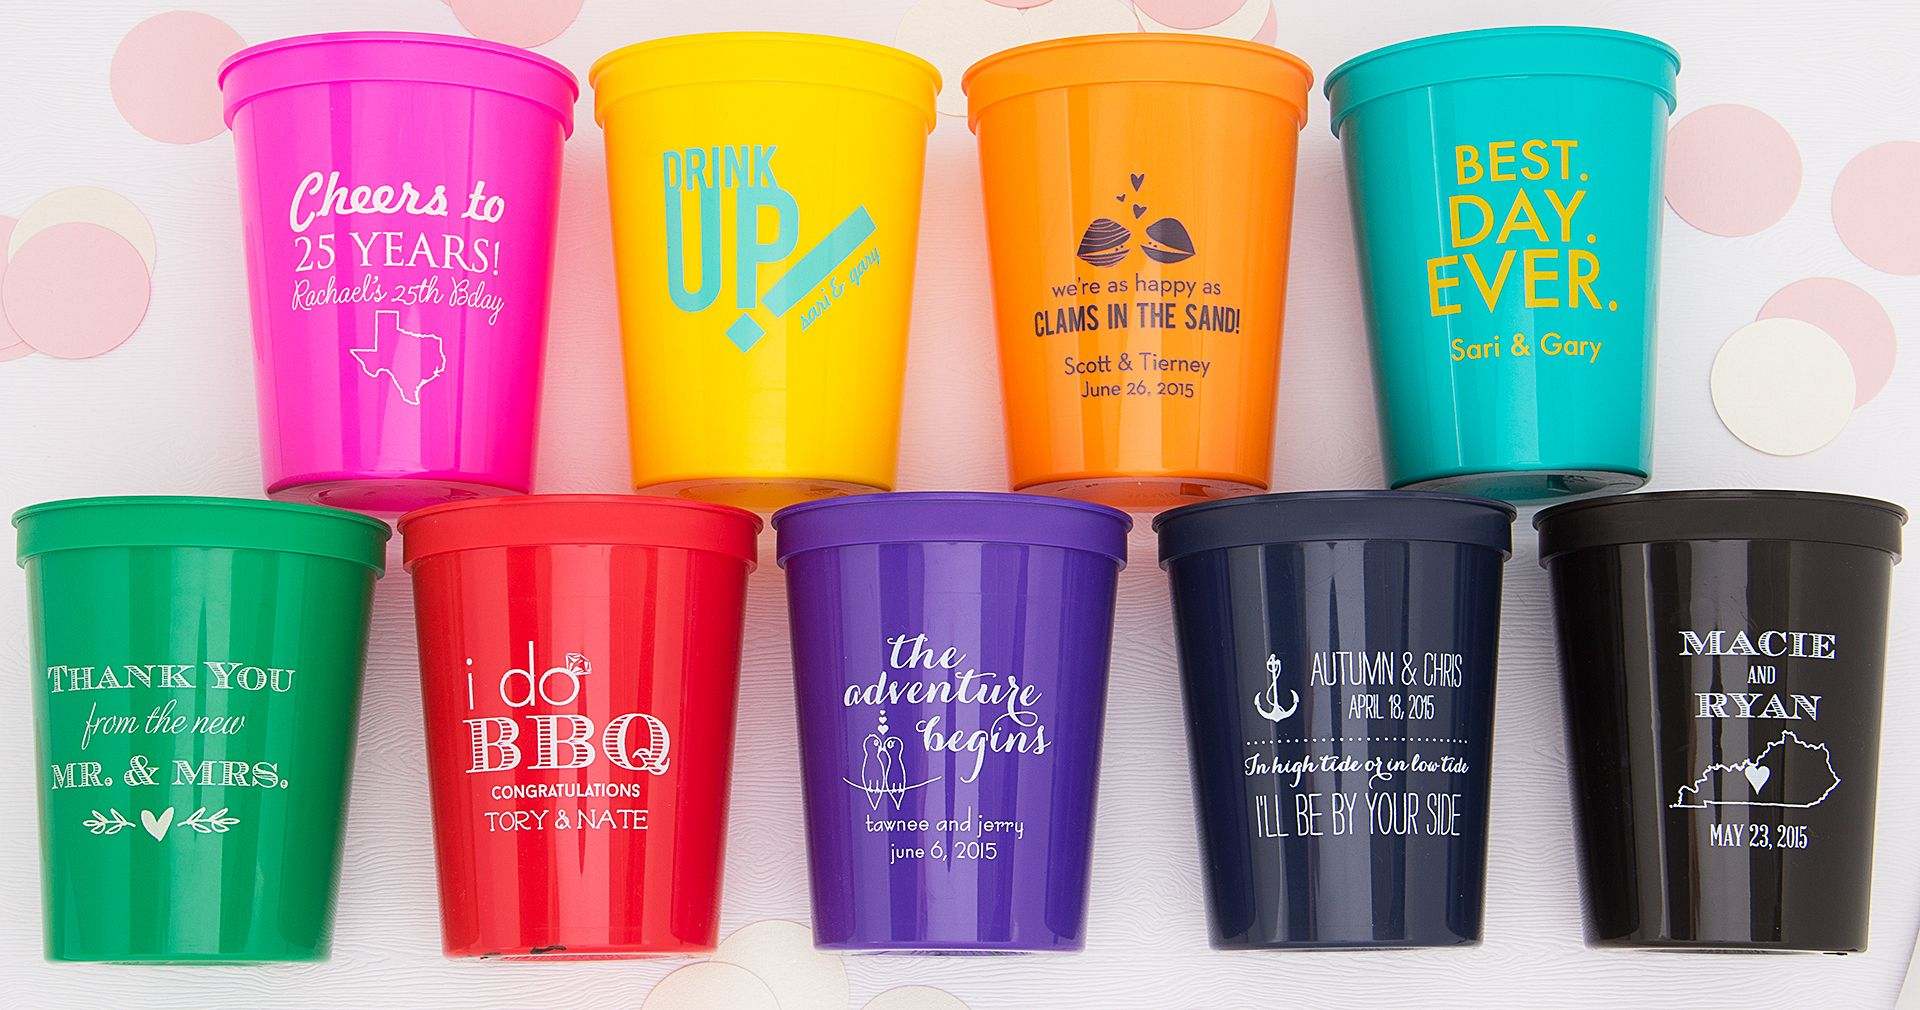 Personalized Party Cups Design Your Own Party Cups Foryourparty Com Party Cups Personalized Party Cups Custom Plastic Cups